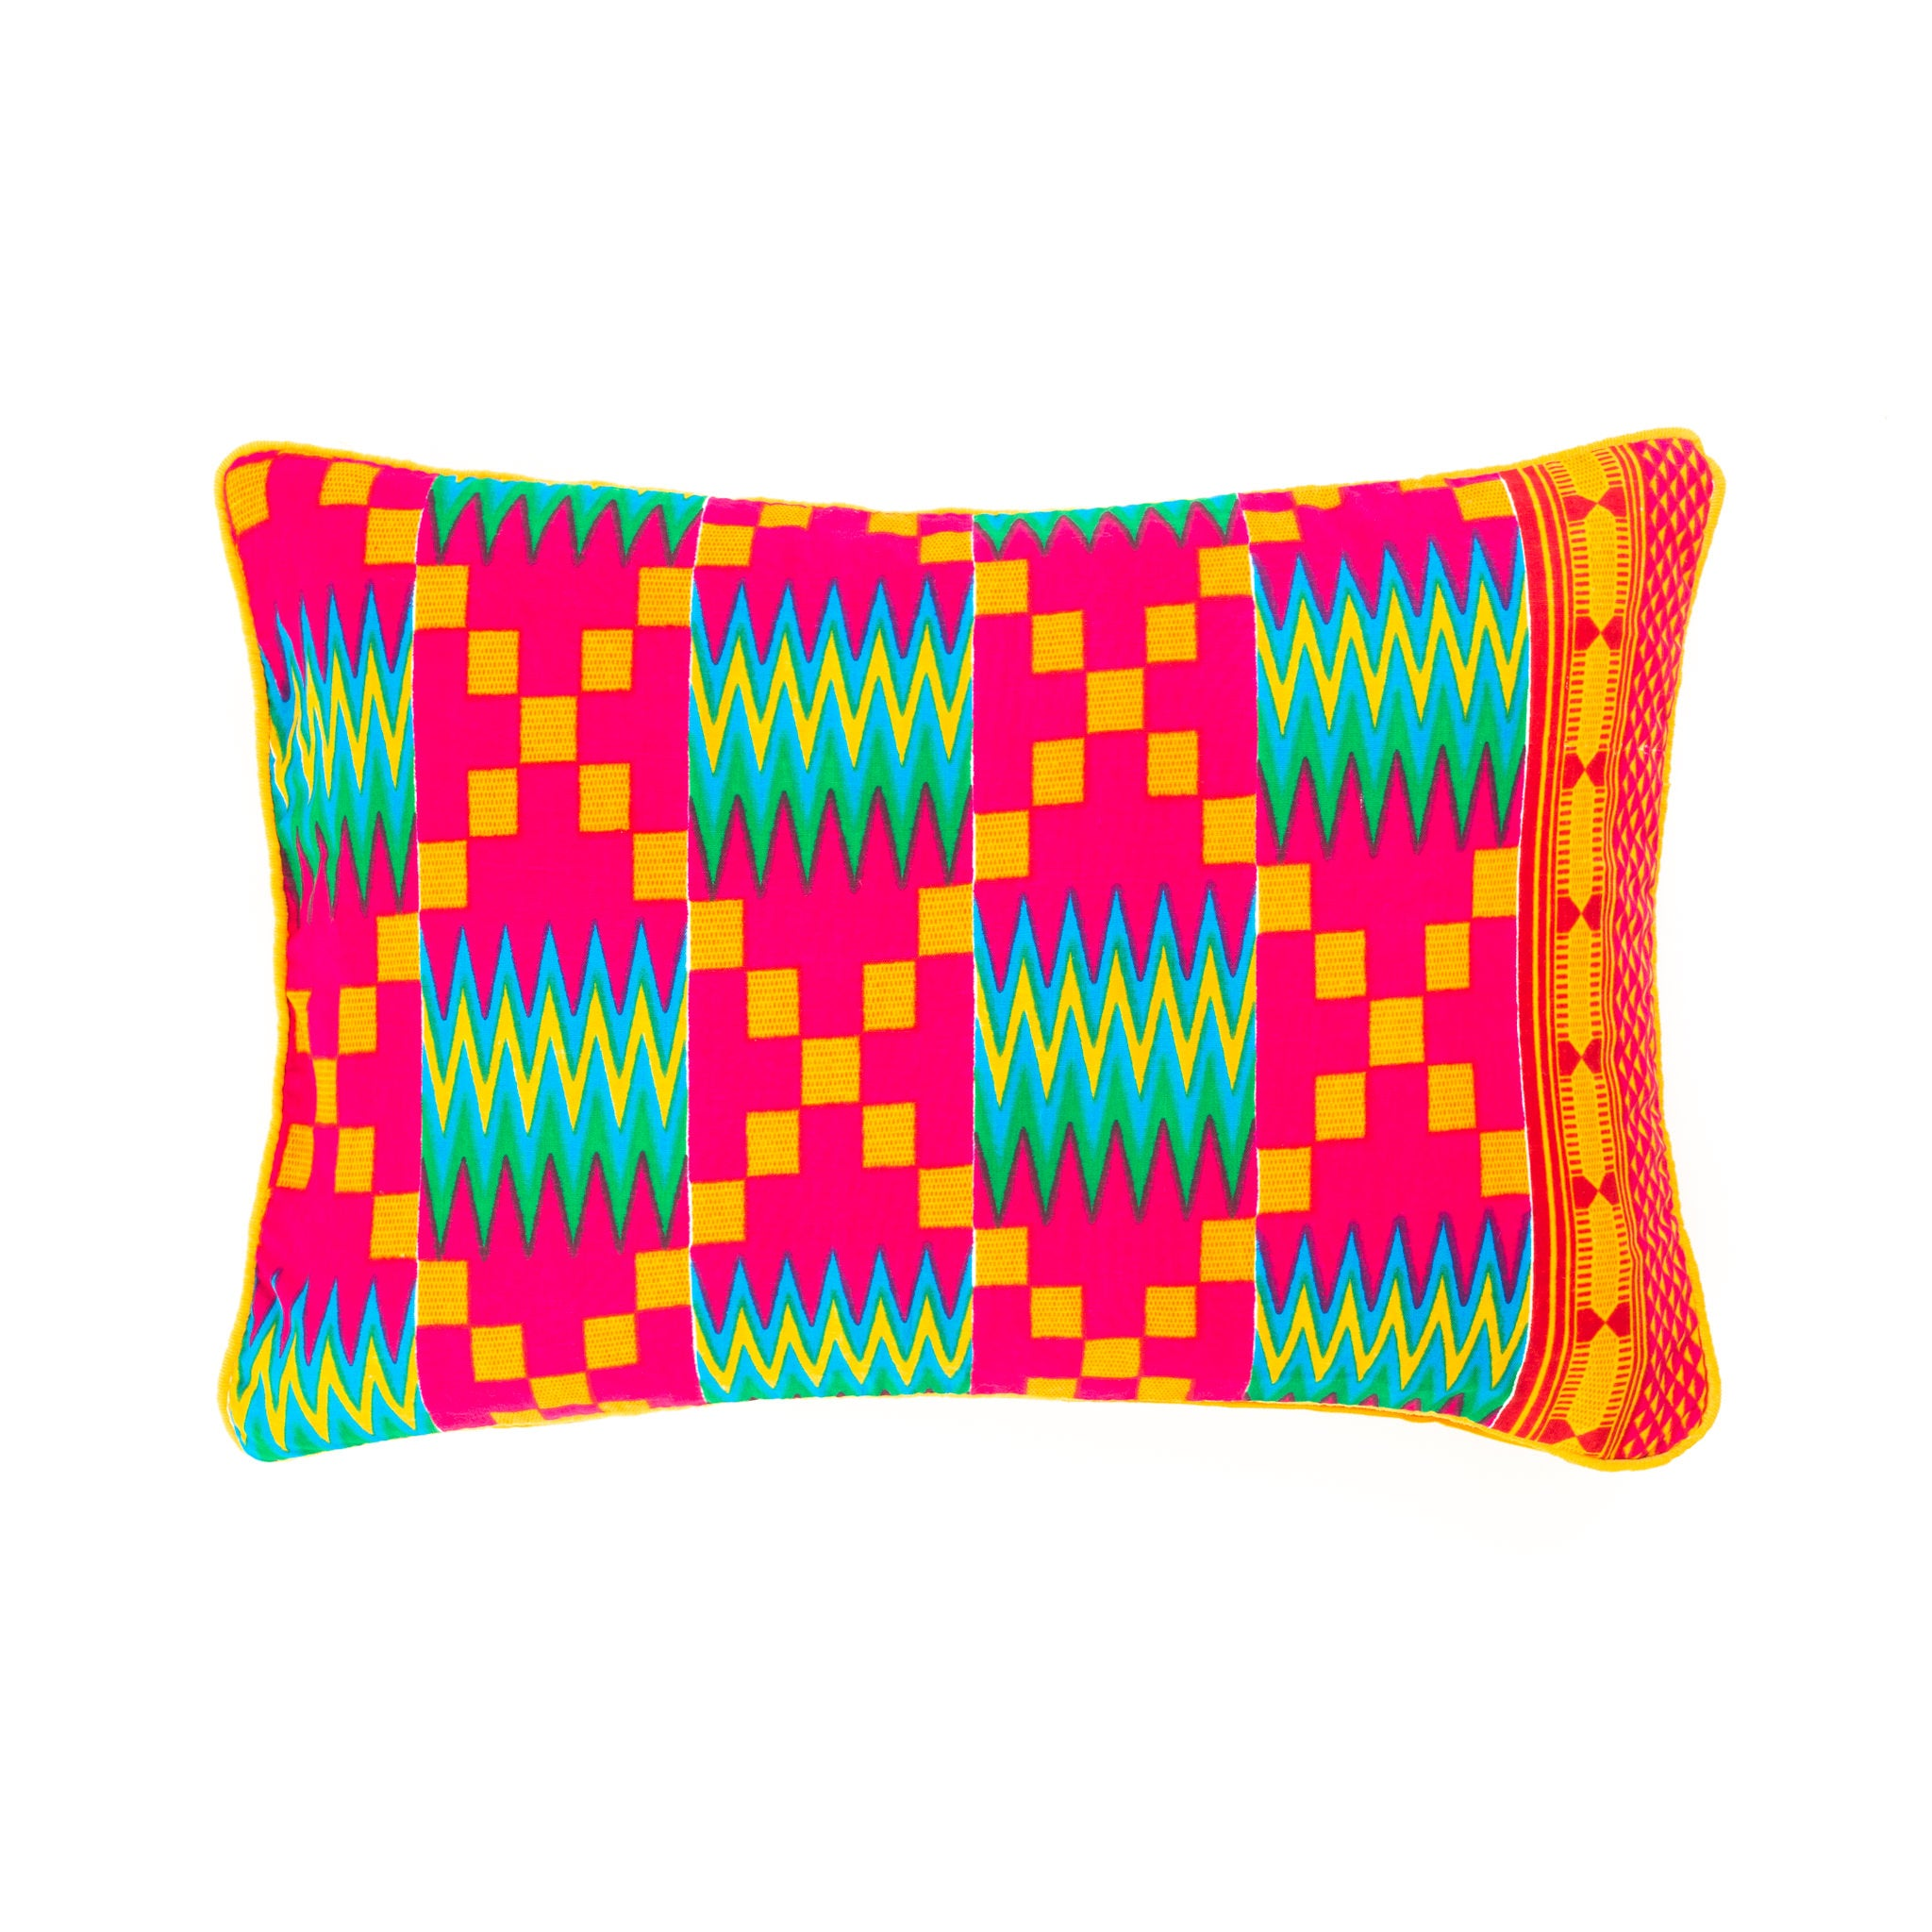 Kente/Printed/Cotton/Pattern/Ghana/Africa/Scatter/Cushion/Bright/Pink/Green/Blue/Orange/